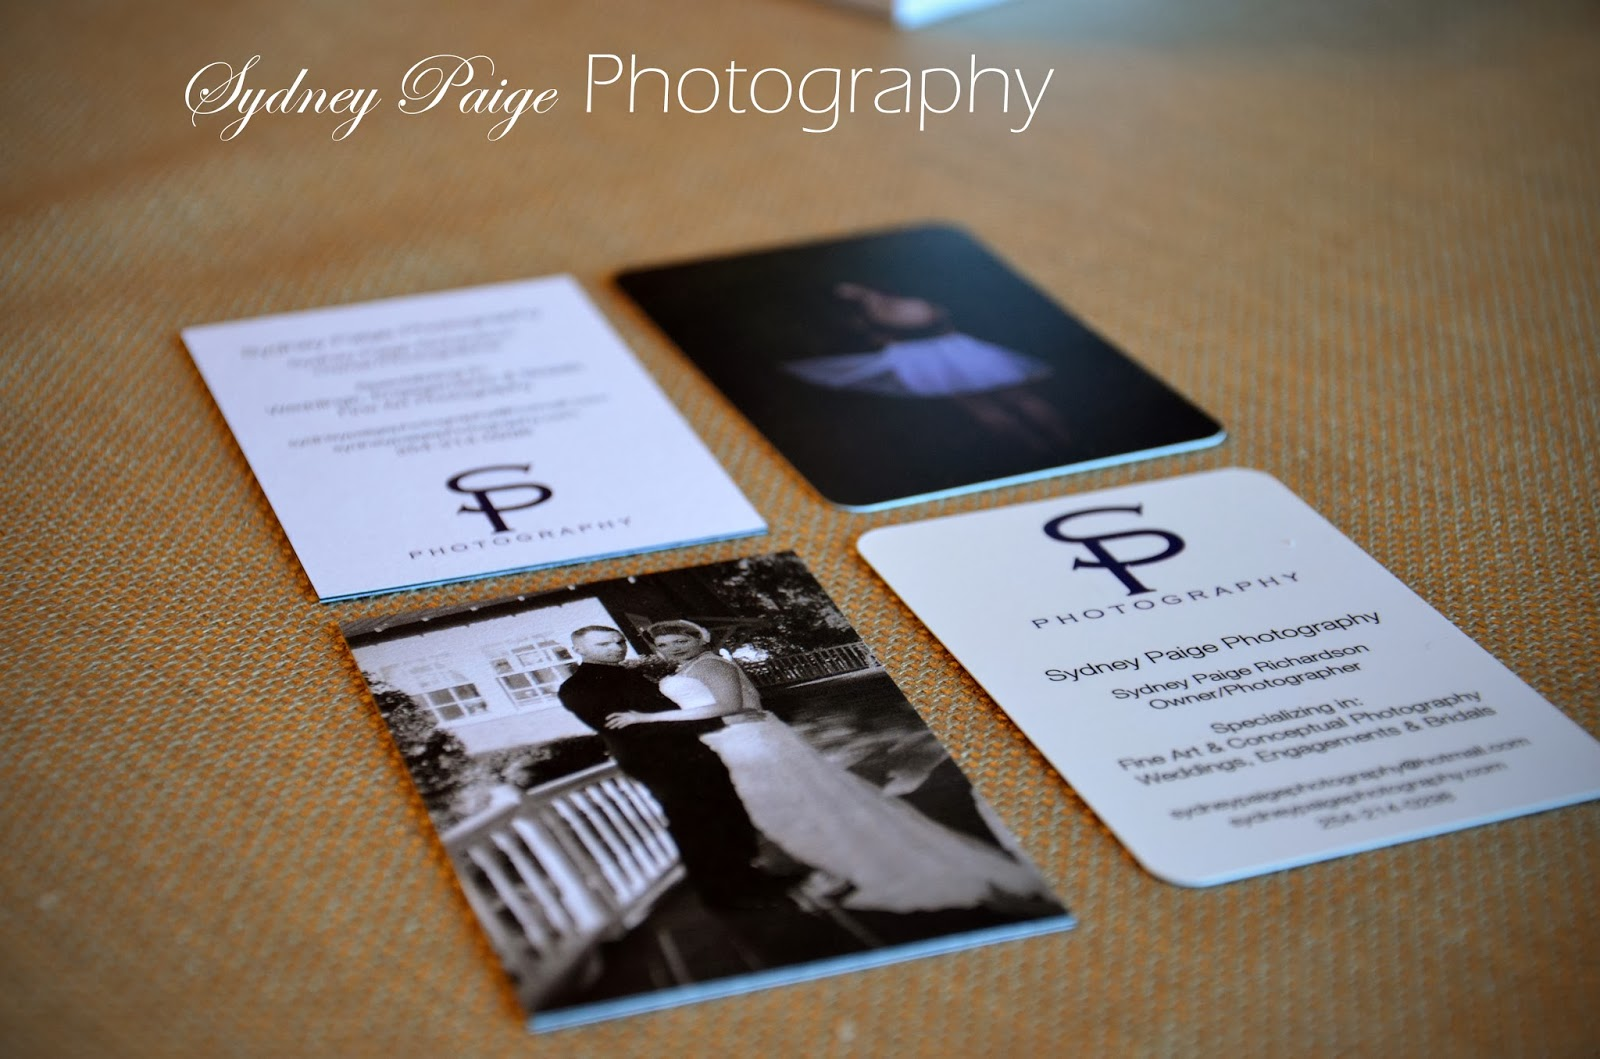 Sydney paige photography blog review business cards moo the wedding photo business card is their luxe edition and the rounded corners are their standard business cards they both are very thick but the round magicingreecefo Gallery